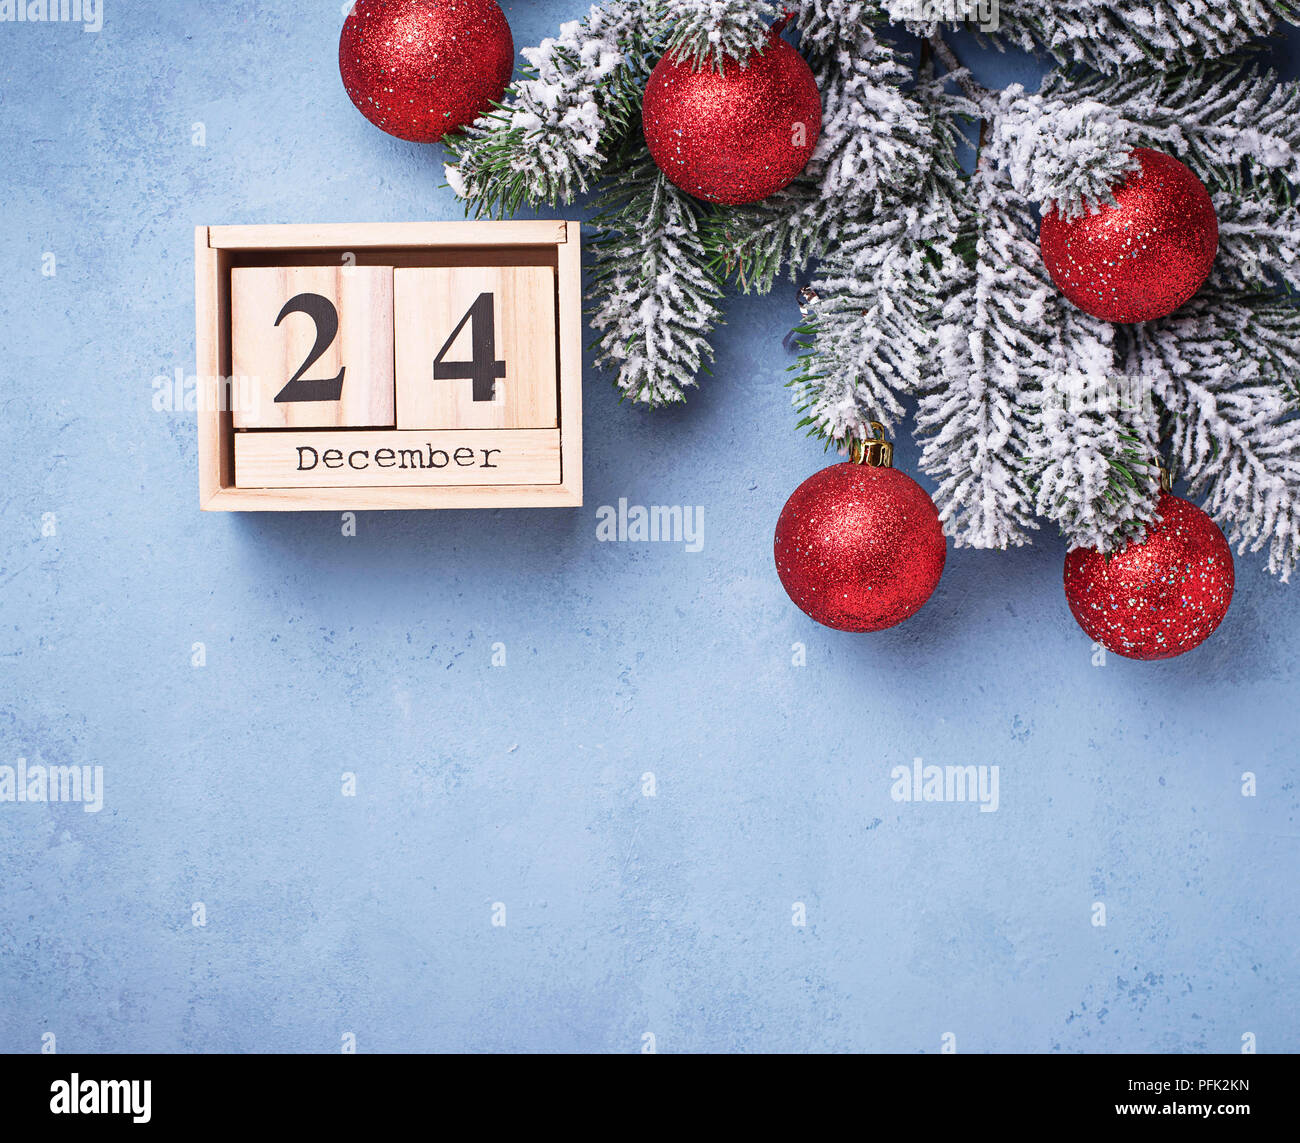 24 December on wooden calendar - Stock Image